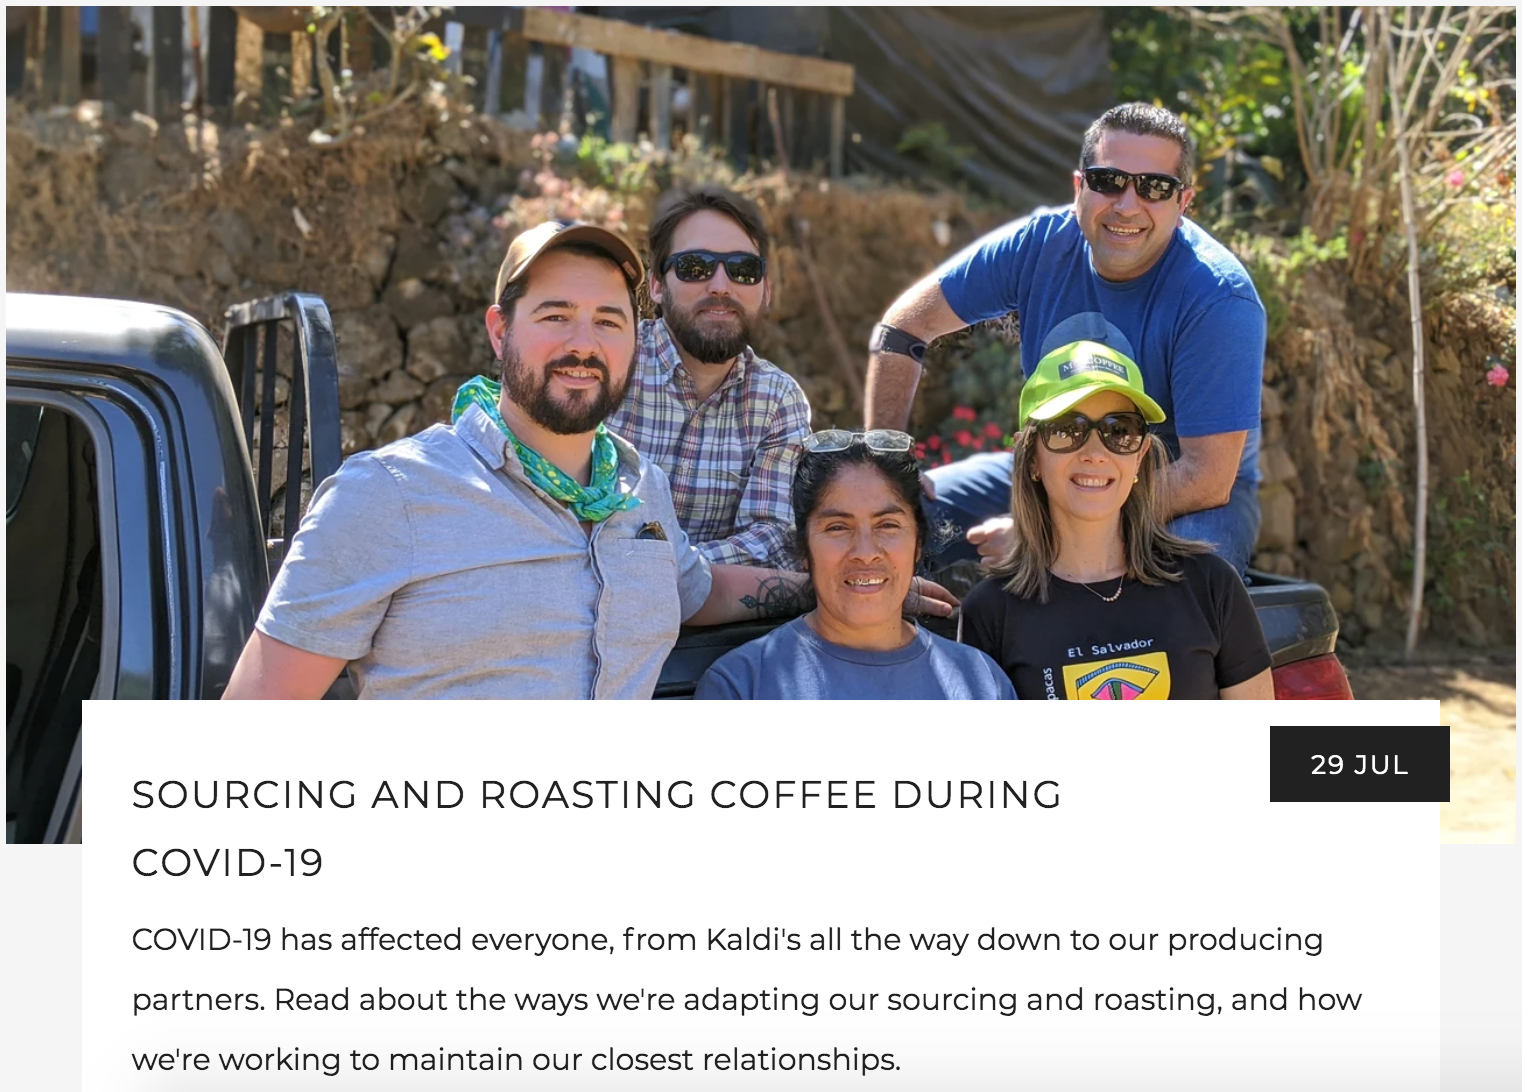 Sourcing and Roasting During COVID-19 | Kaldi's Coffee Blog